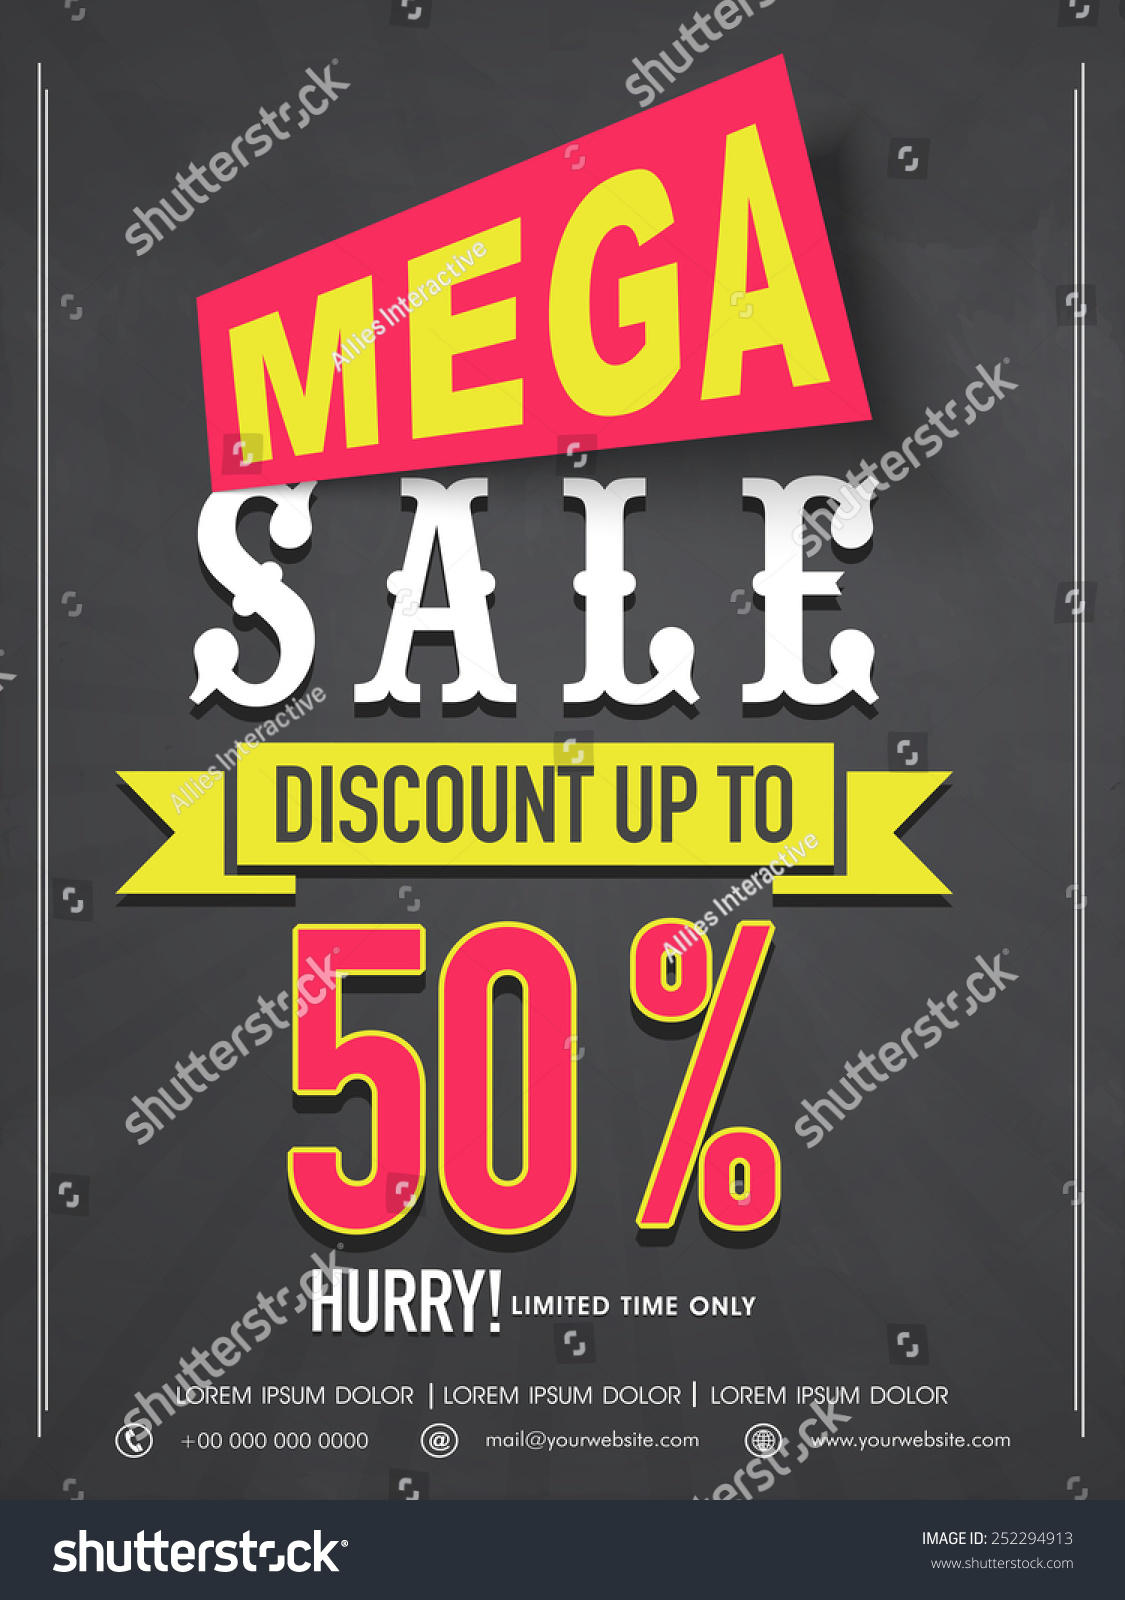 mega flyer banner template design stock vector  mega flyer banner or template design best discount offer for your business